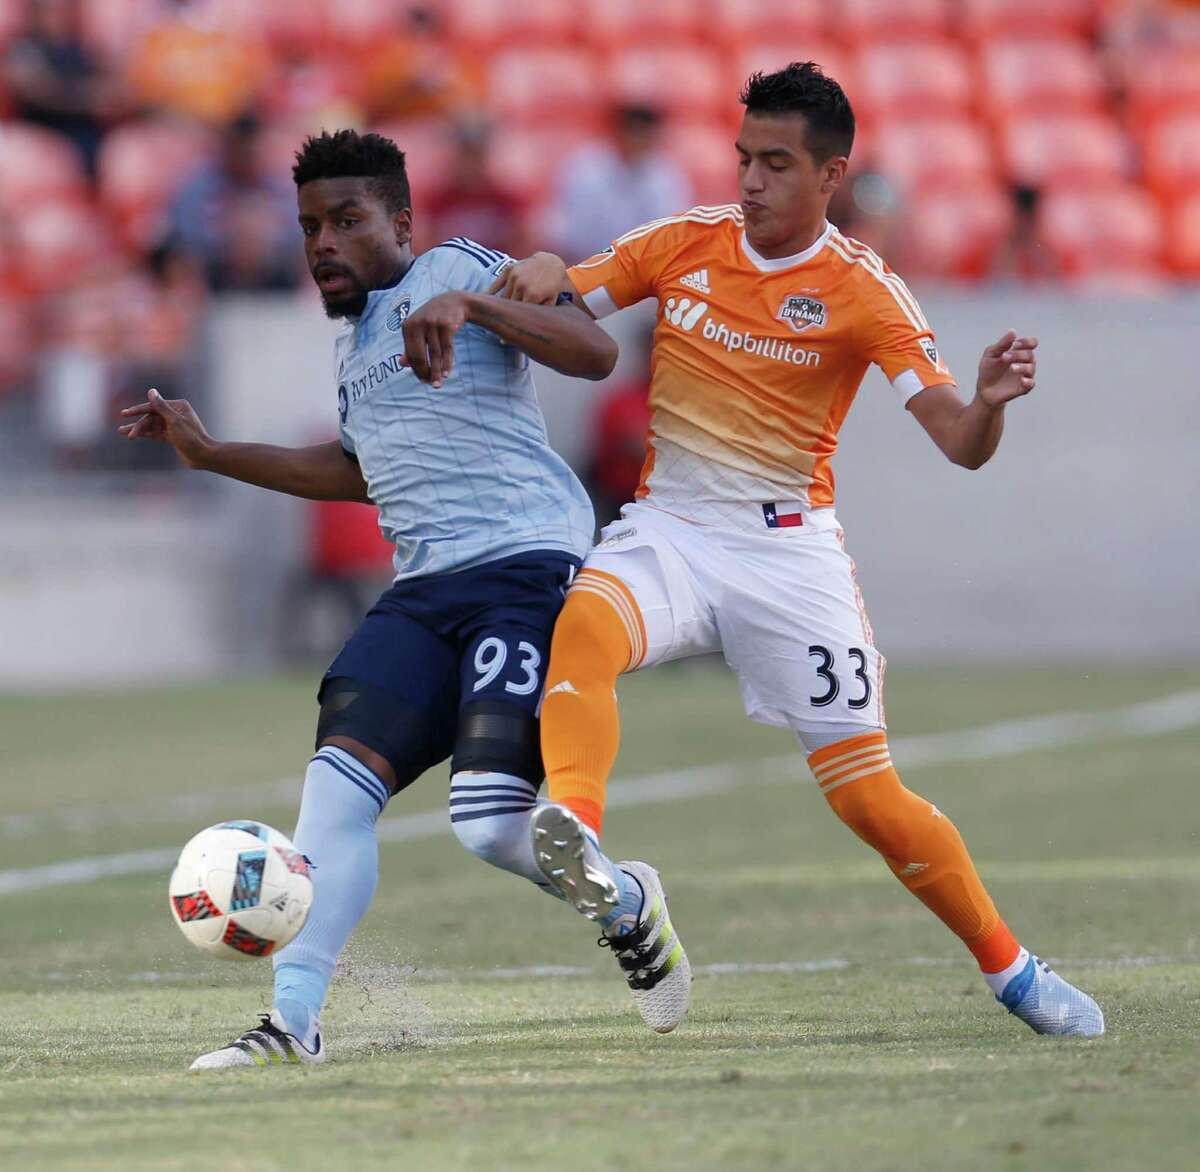 Sporting Kansas City's Soni Mustivar, left, gets the inside track against the Dynamo's Leonel Miranda during Wednesday night's match.